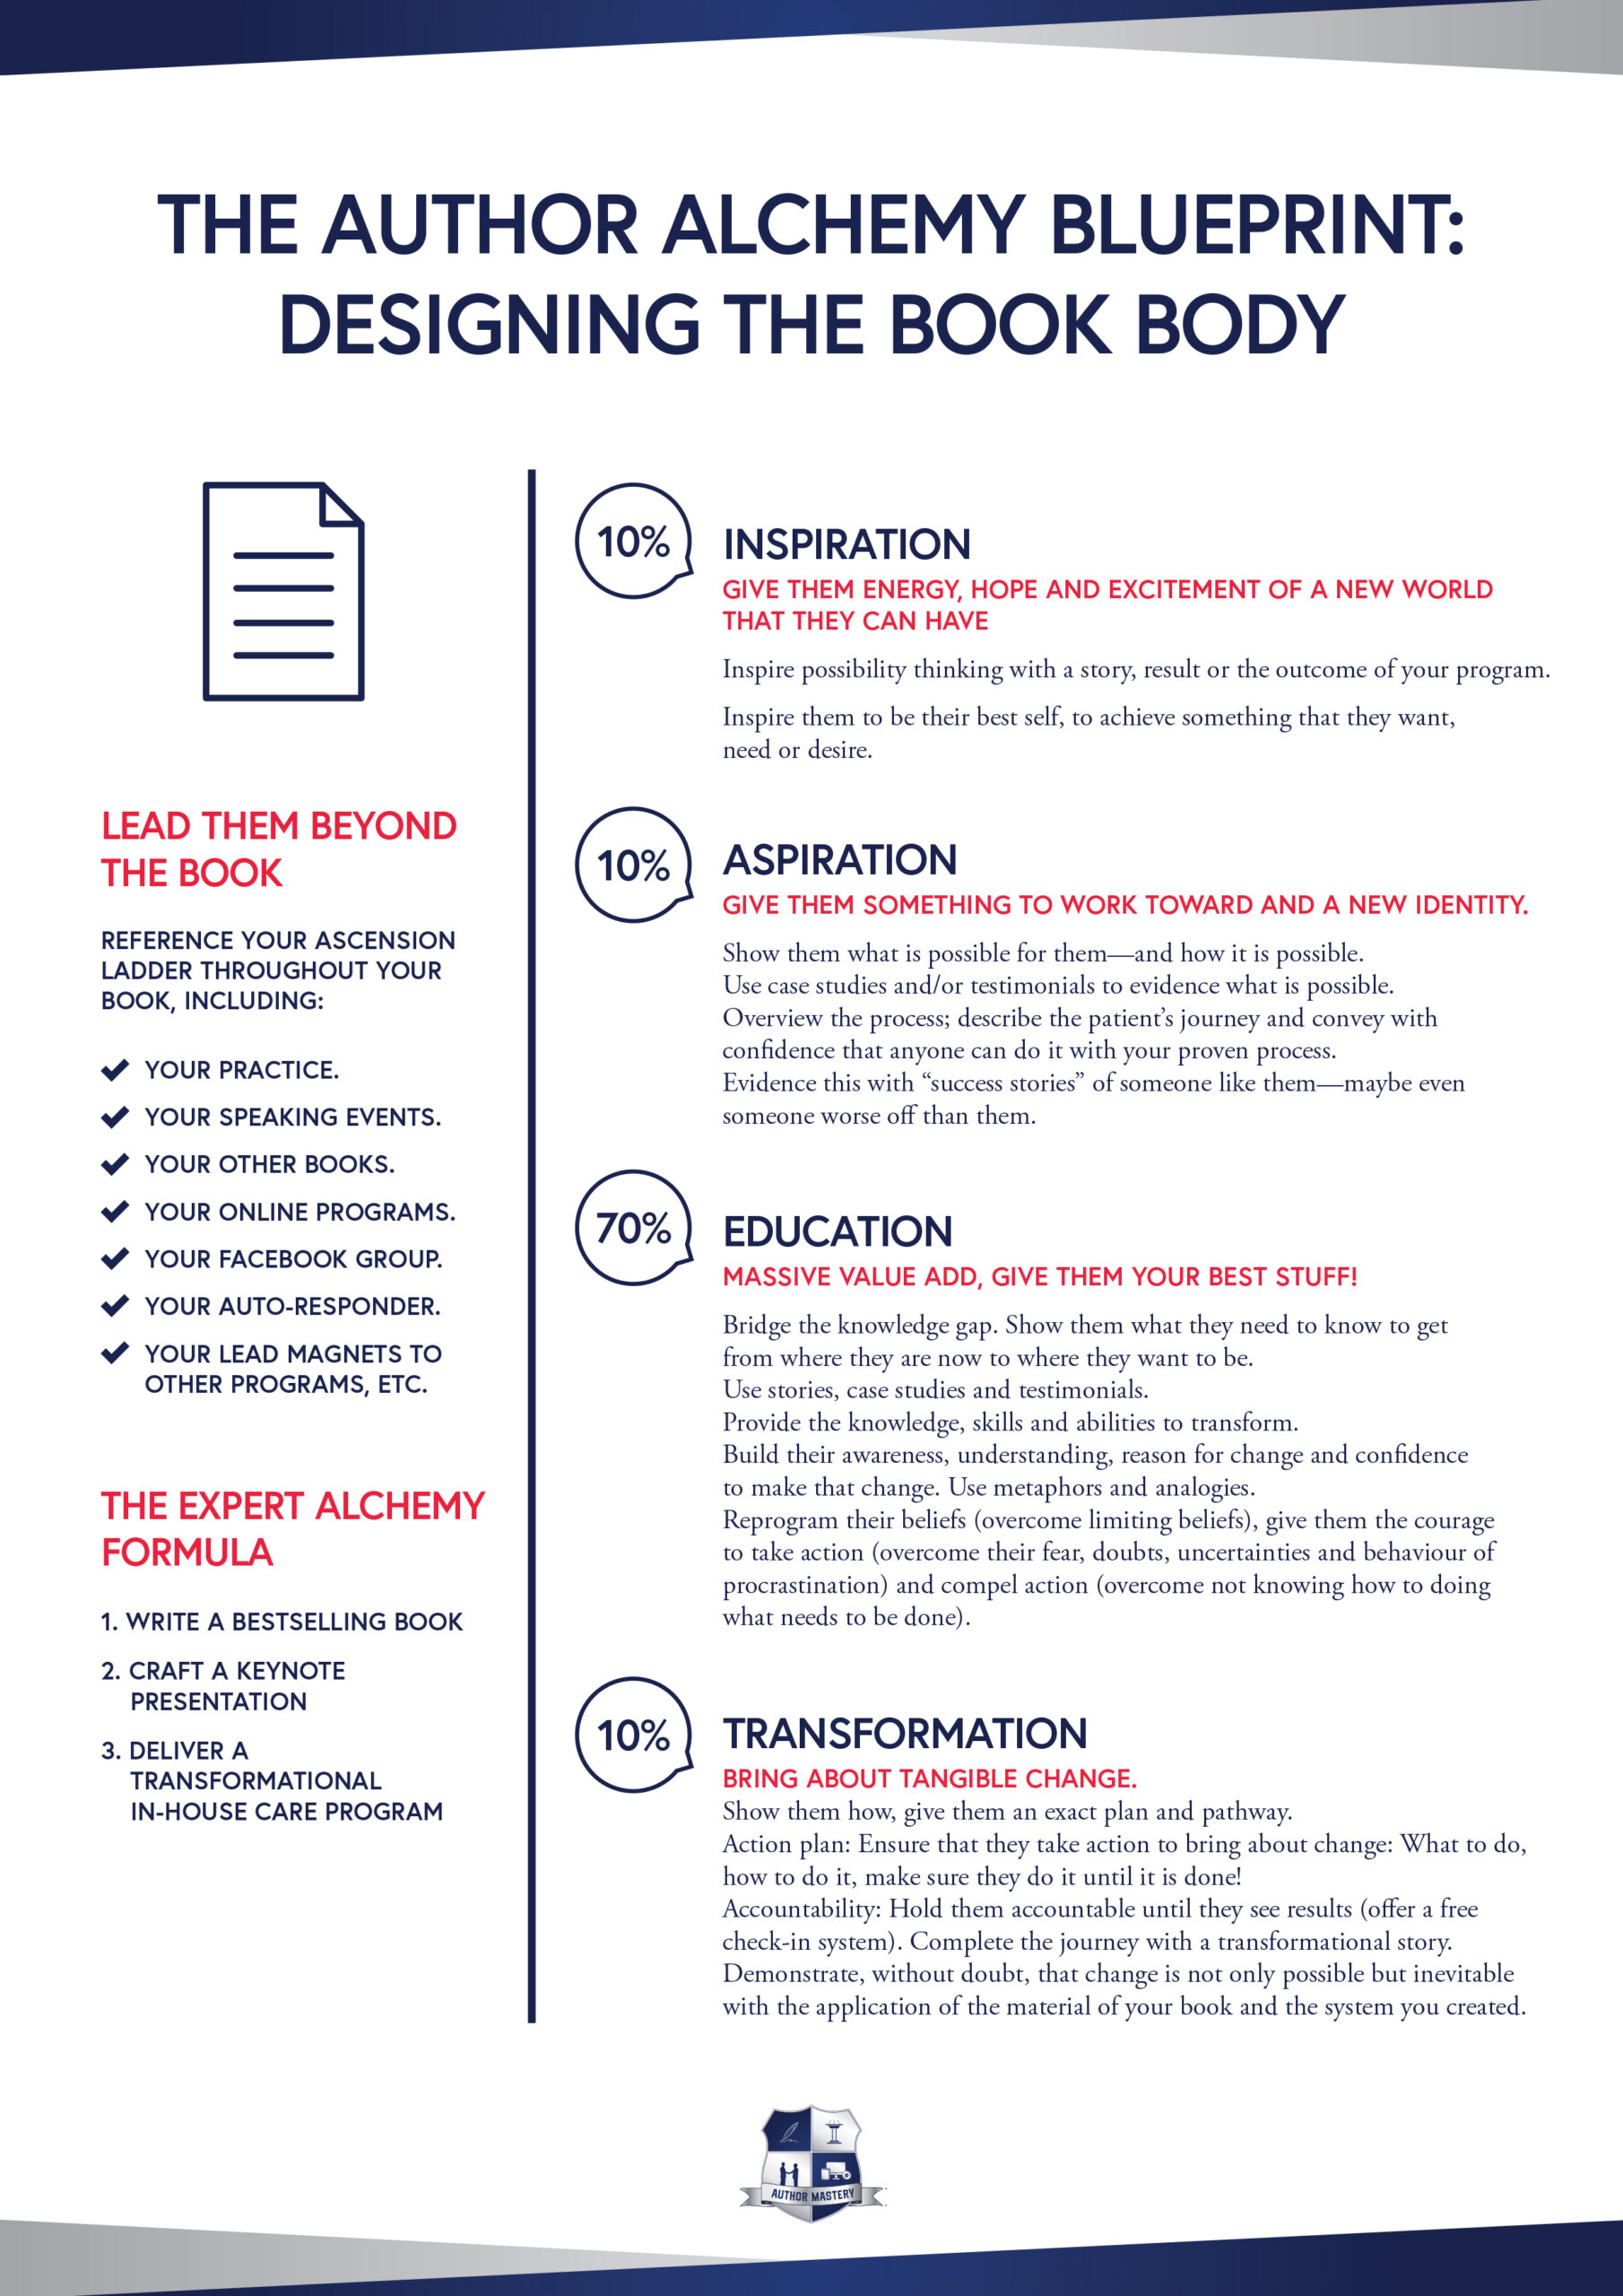 IAET Model From Author Mastery For Book Writing